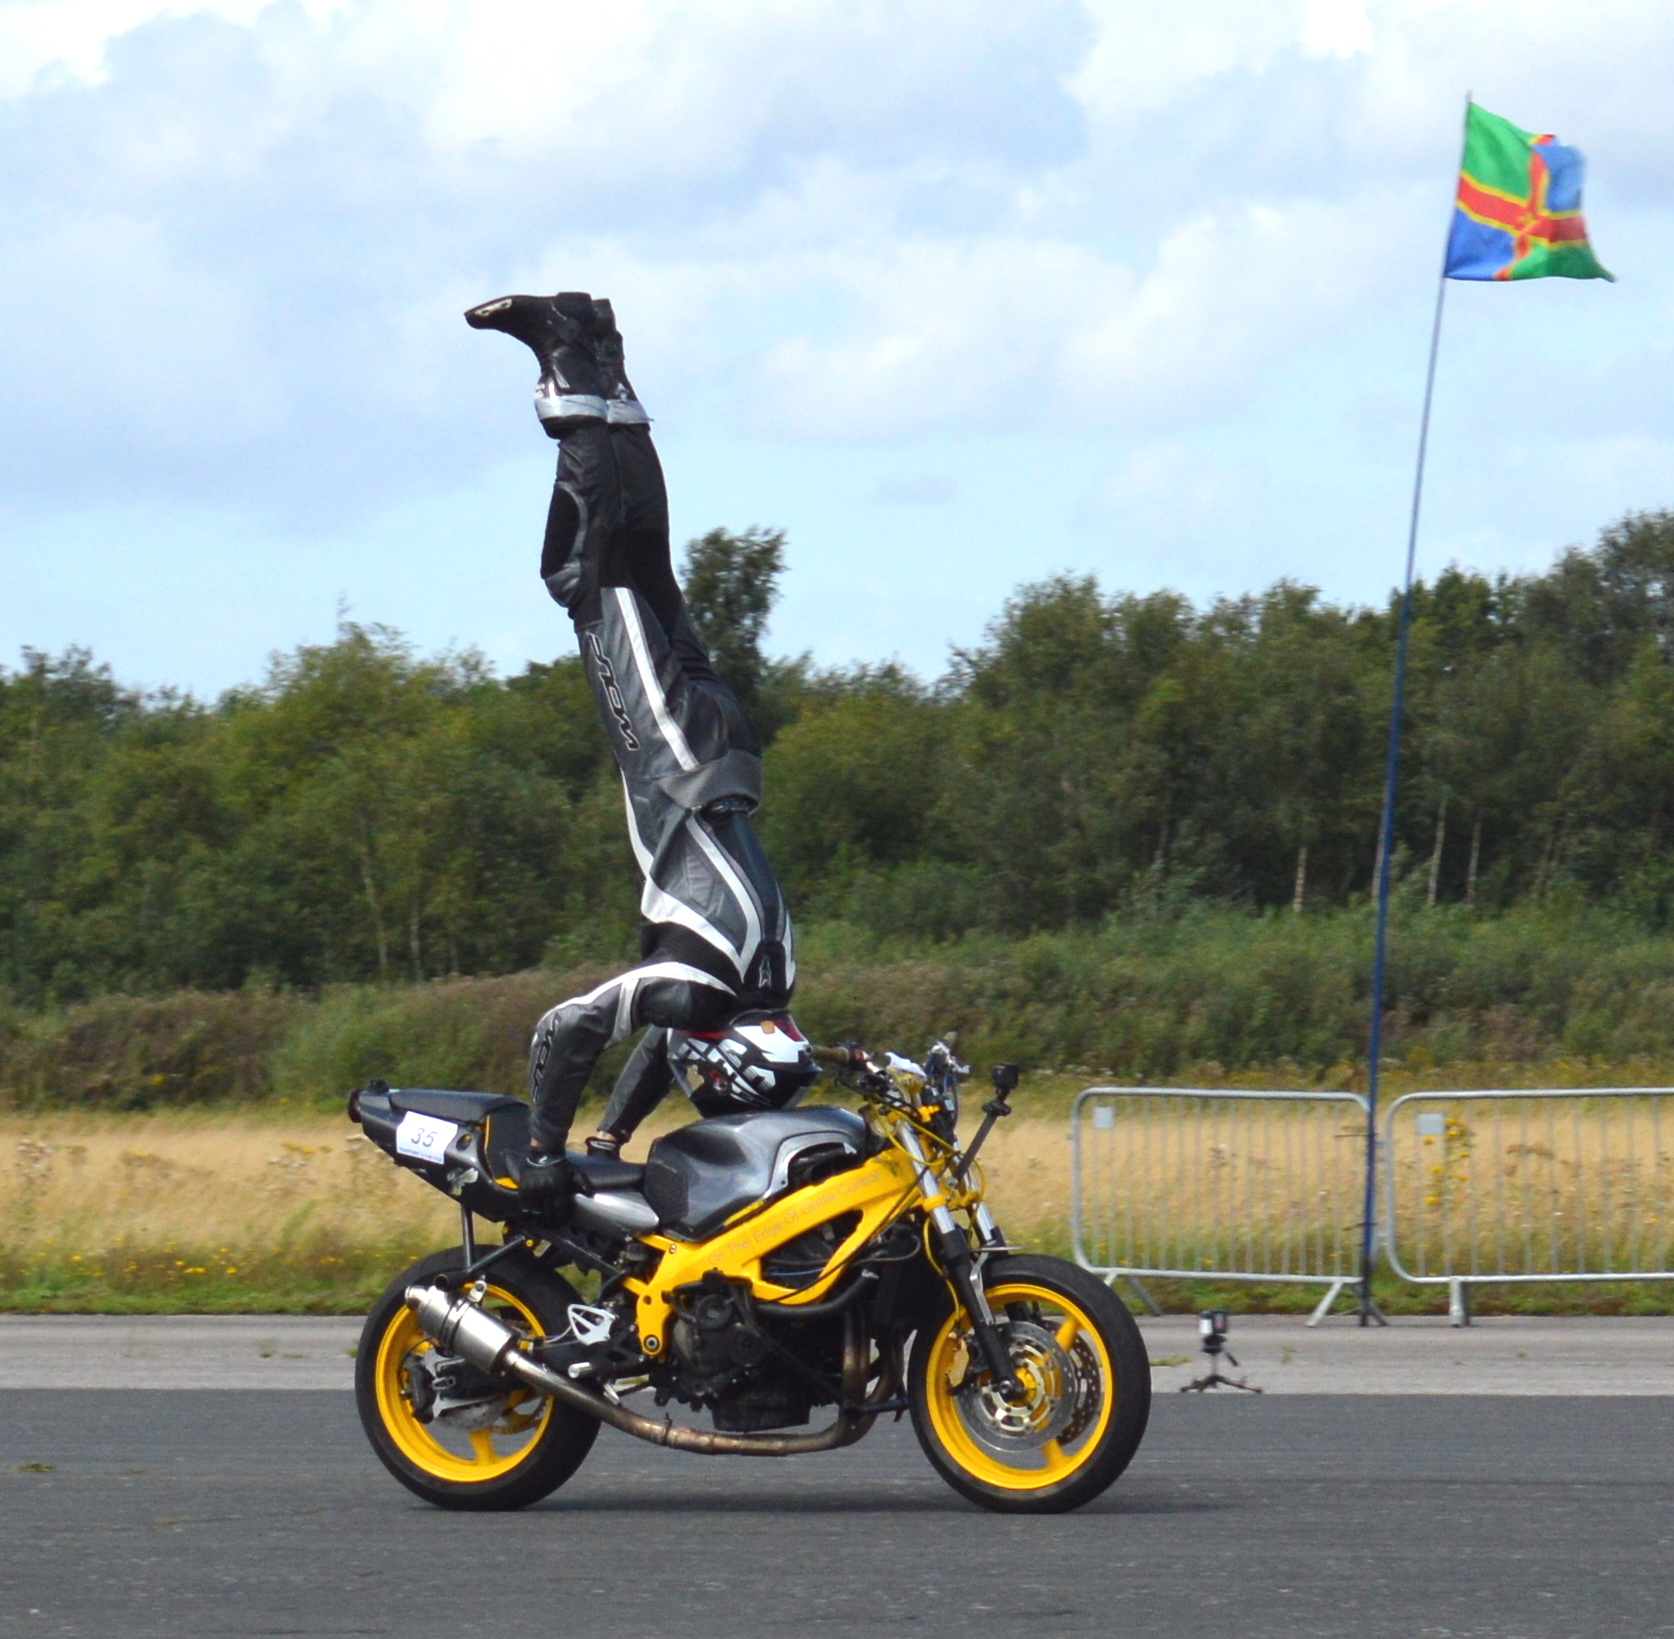 A headstand on a motorbike performed by Marco George